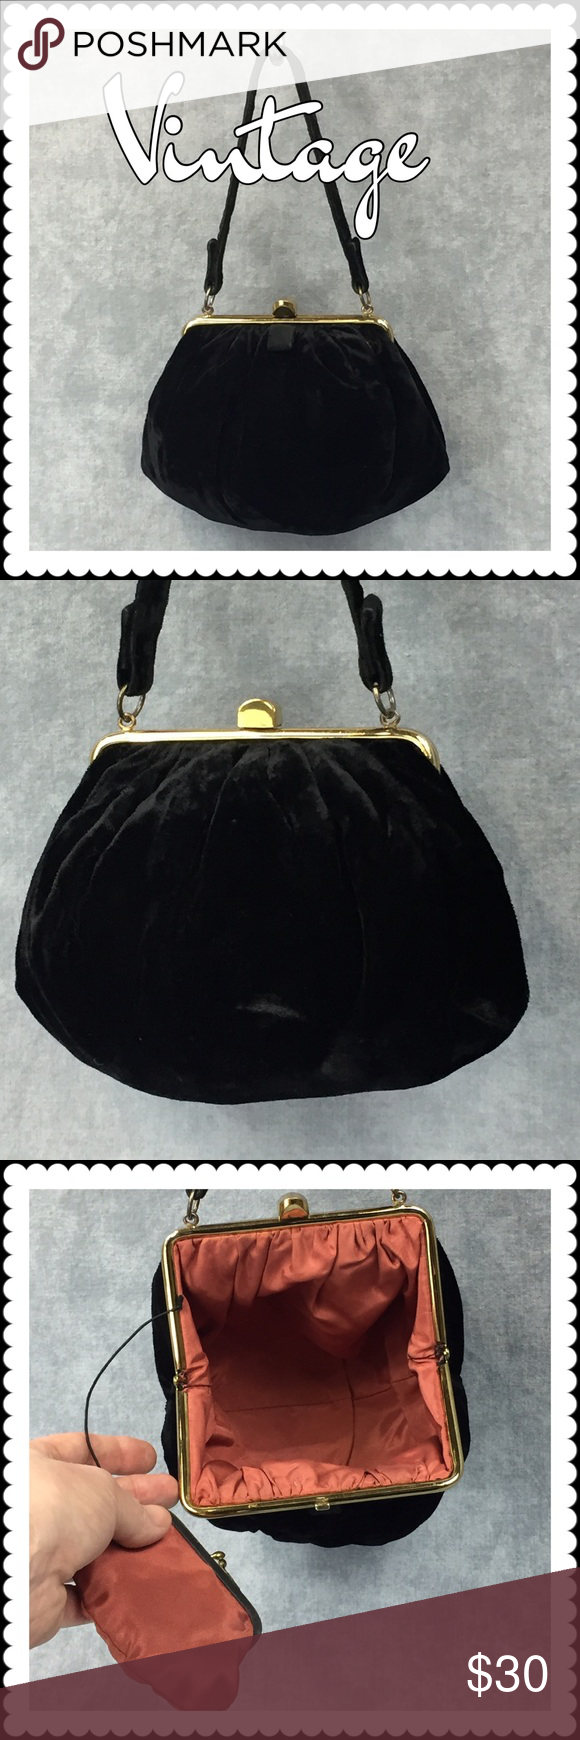 👜 Vintage Black Velvet Purse 👜 Vintage Black Velvet Purse 👜 Salmon colored silk interior, original attached coin purse, gold clasp closure. In excellent condition and a beautiful addition to an evening look. Stain, odor and snag-free. Vintage Bags Mini Bags